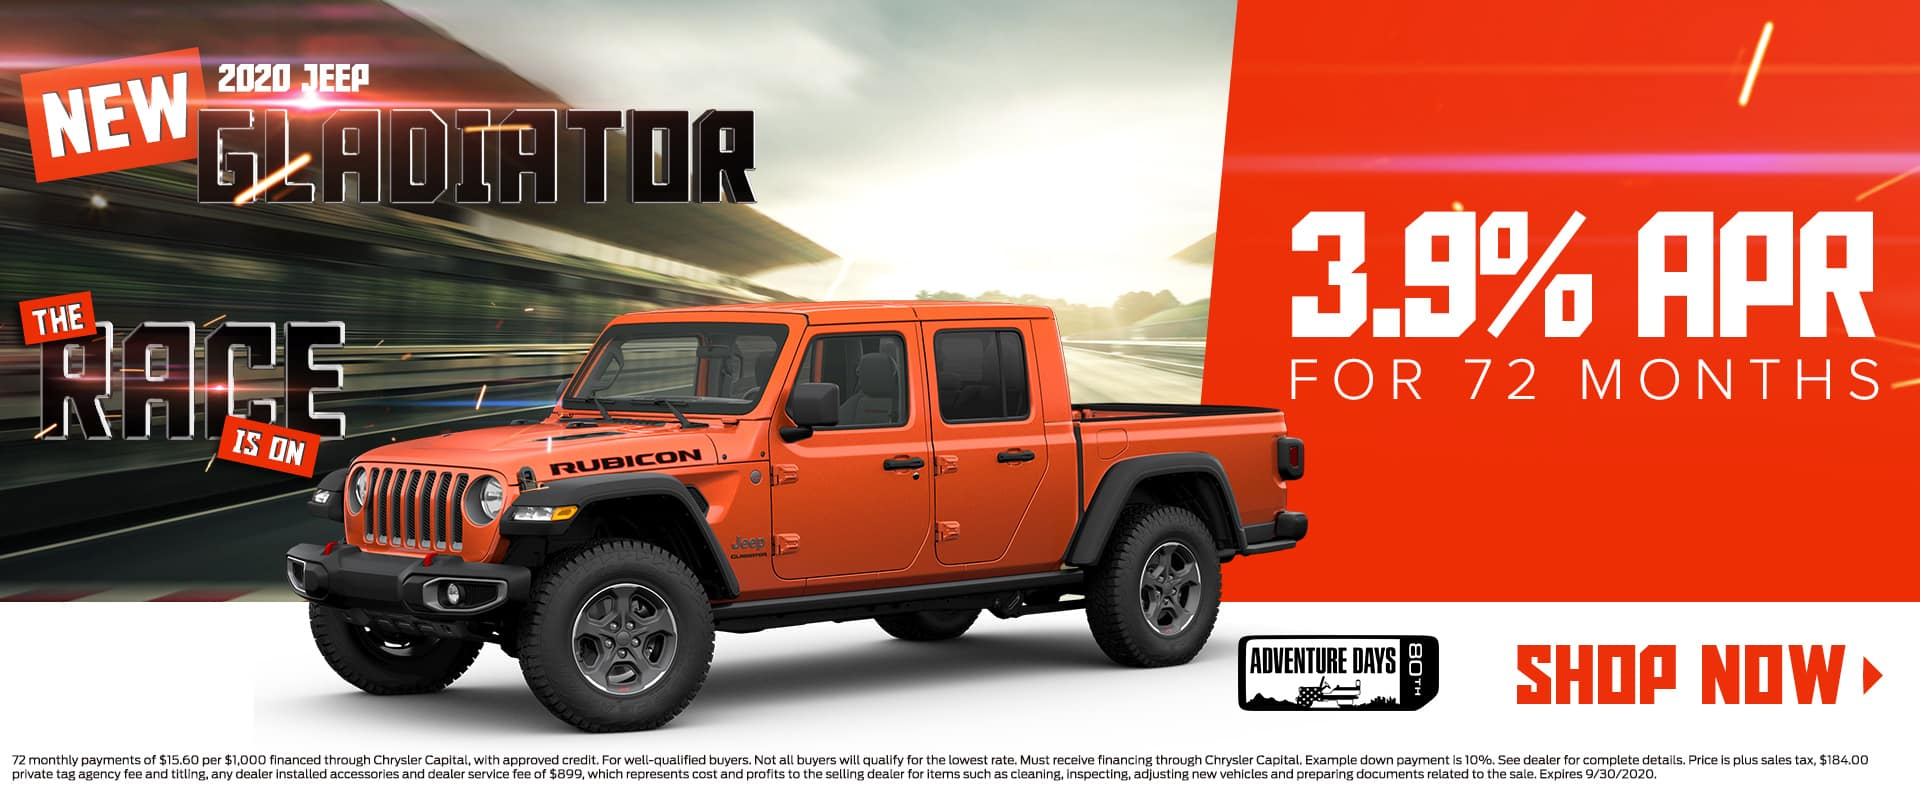 New 2020 Jeep Gladiator | 3.9% For 72 Months | The Race Is On | 80th Adventure Days